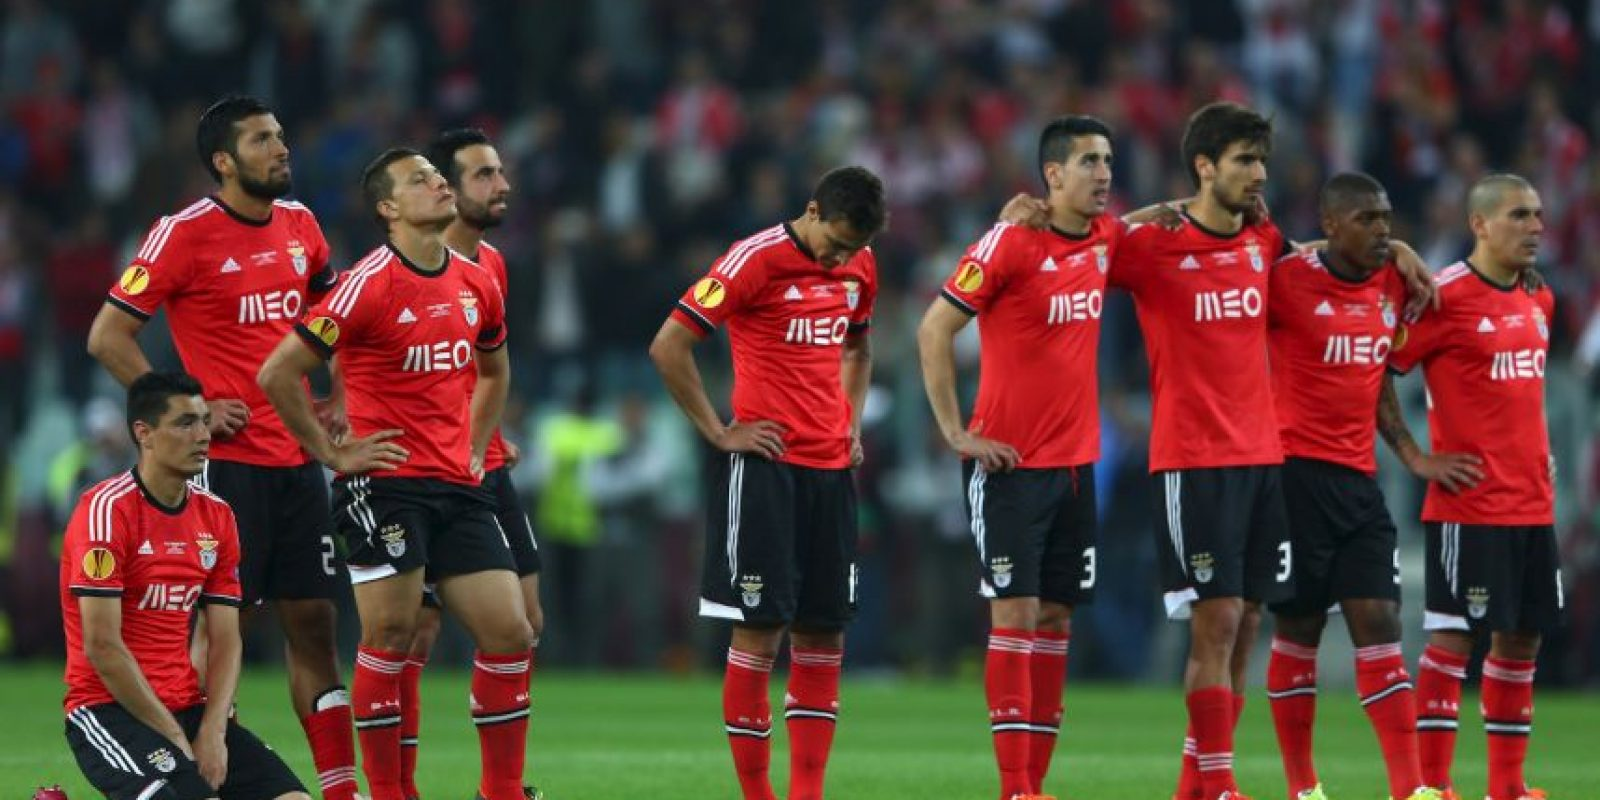 Benfica Foto:Getty Images